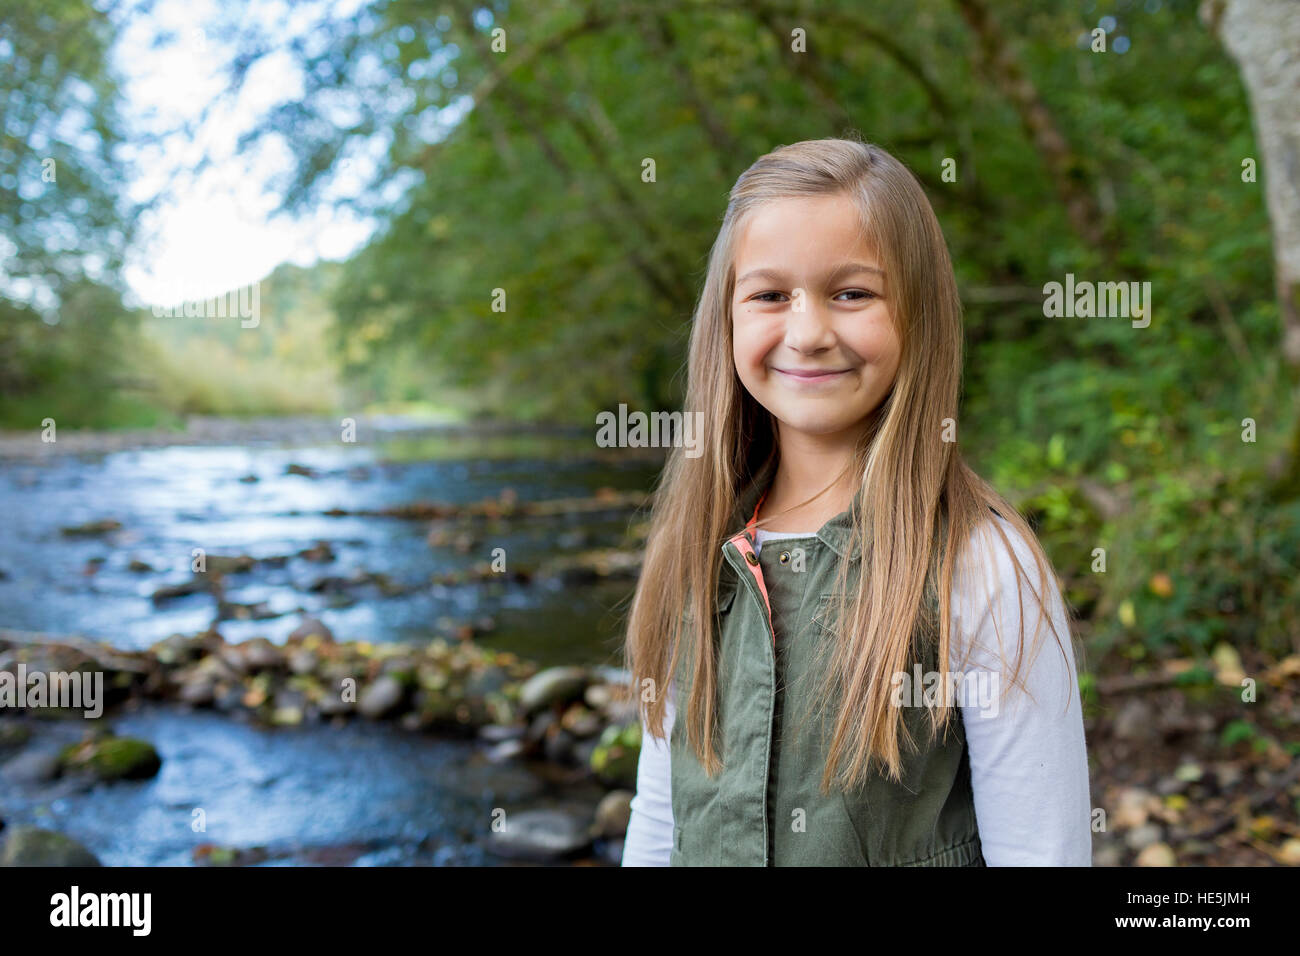 Young girl in a green vest posing for a lifestyle portrait outdoors along the banks of the McKenzie River in Oregon. - Stock Image